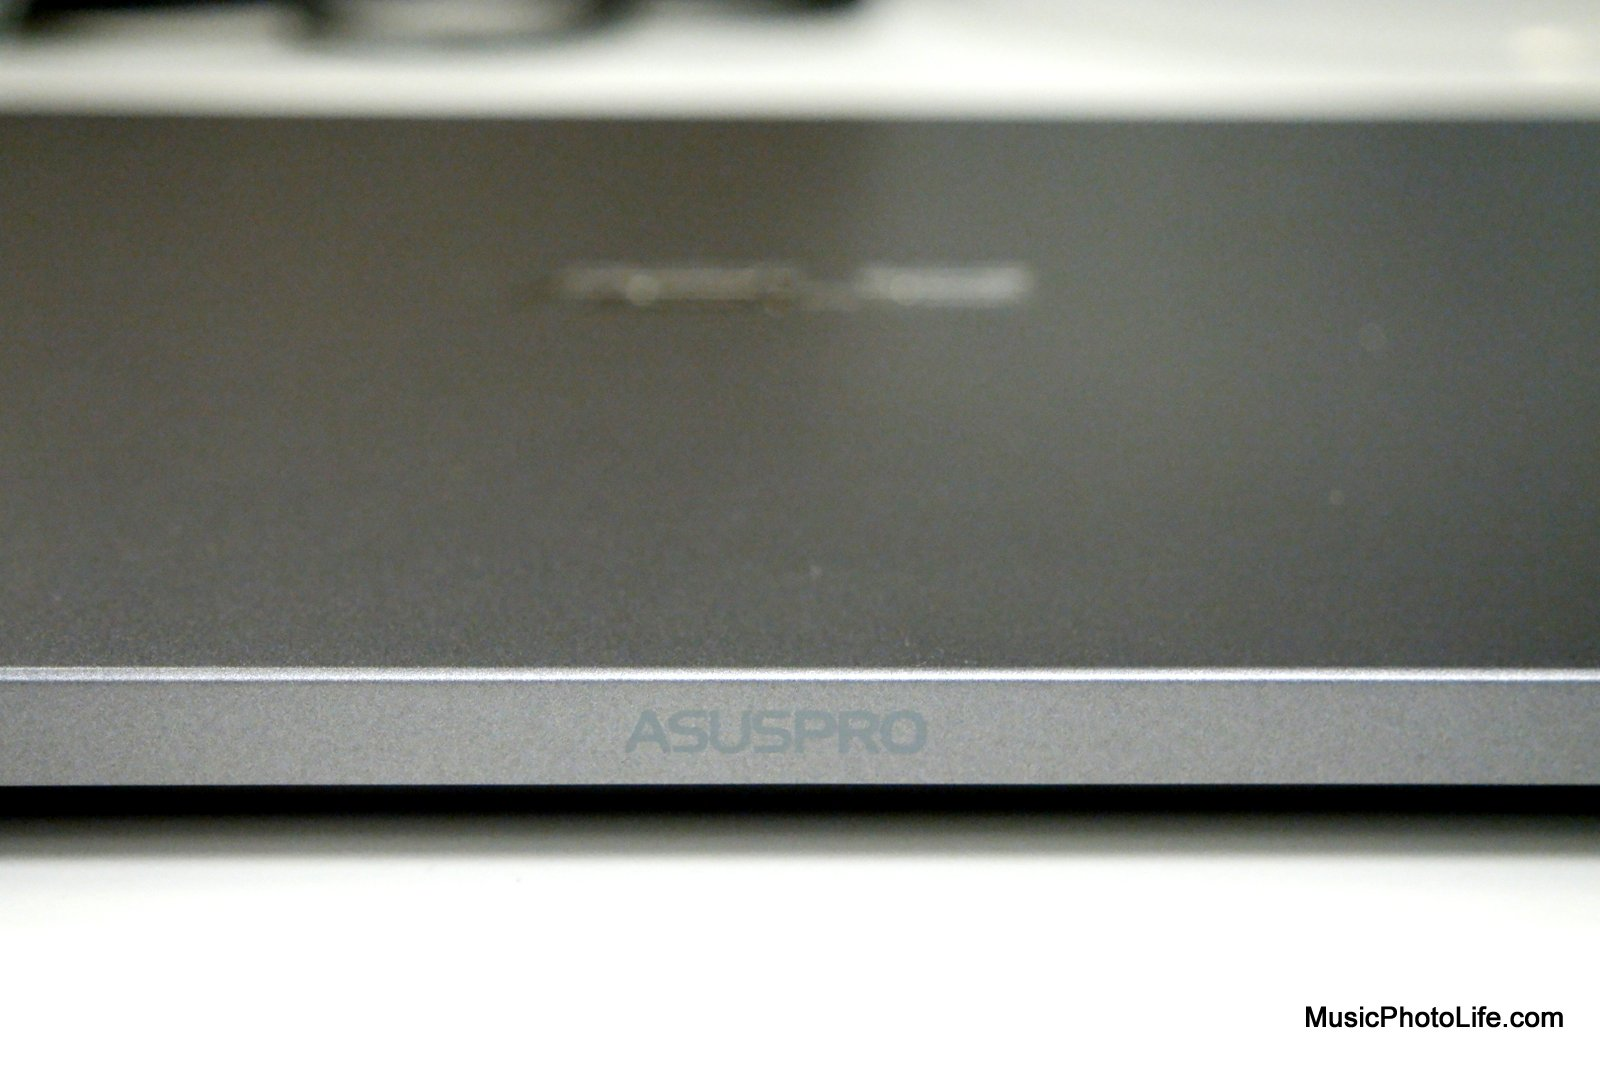 ASUSPRO B9440 review by Chester Tan musicphotolife.com